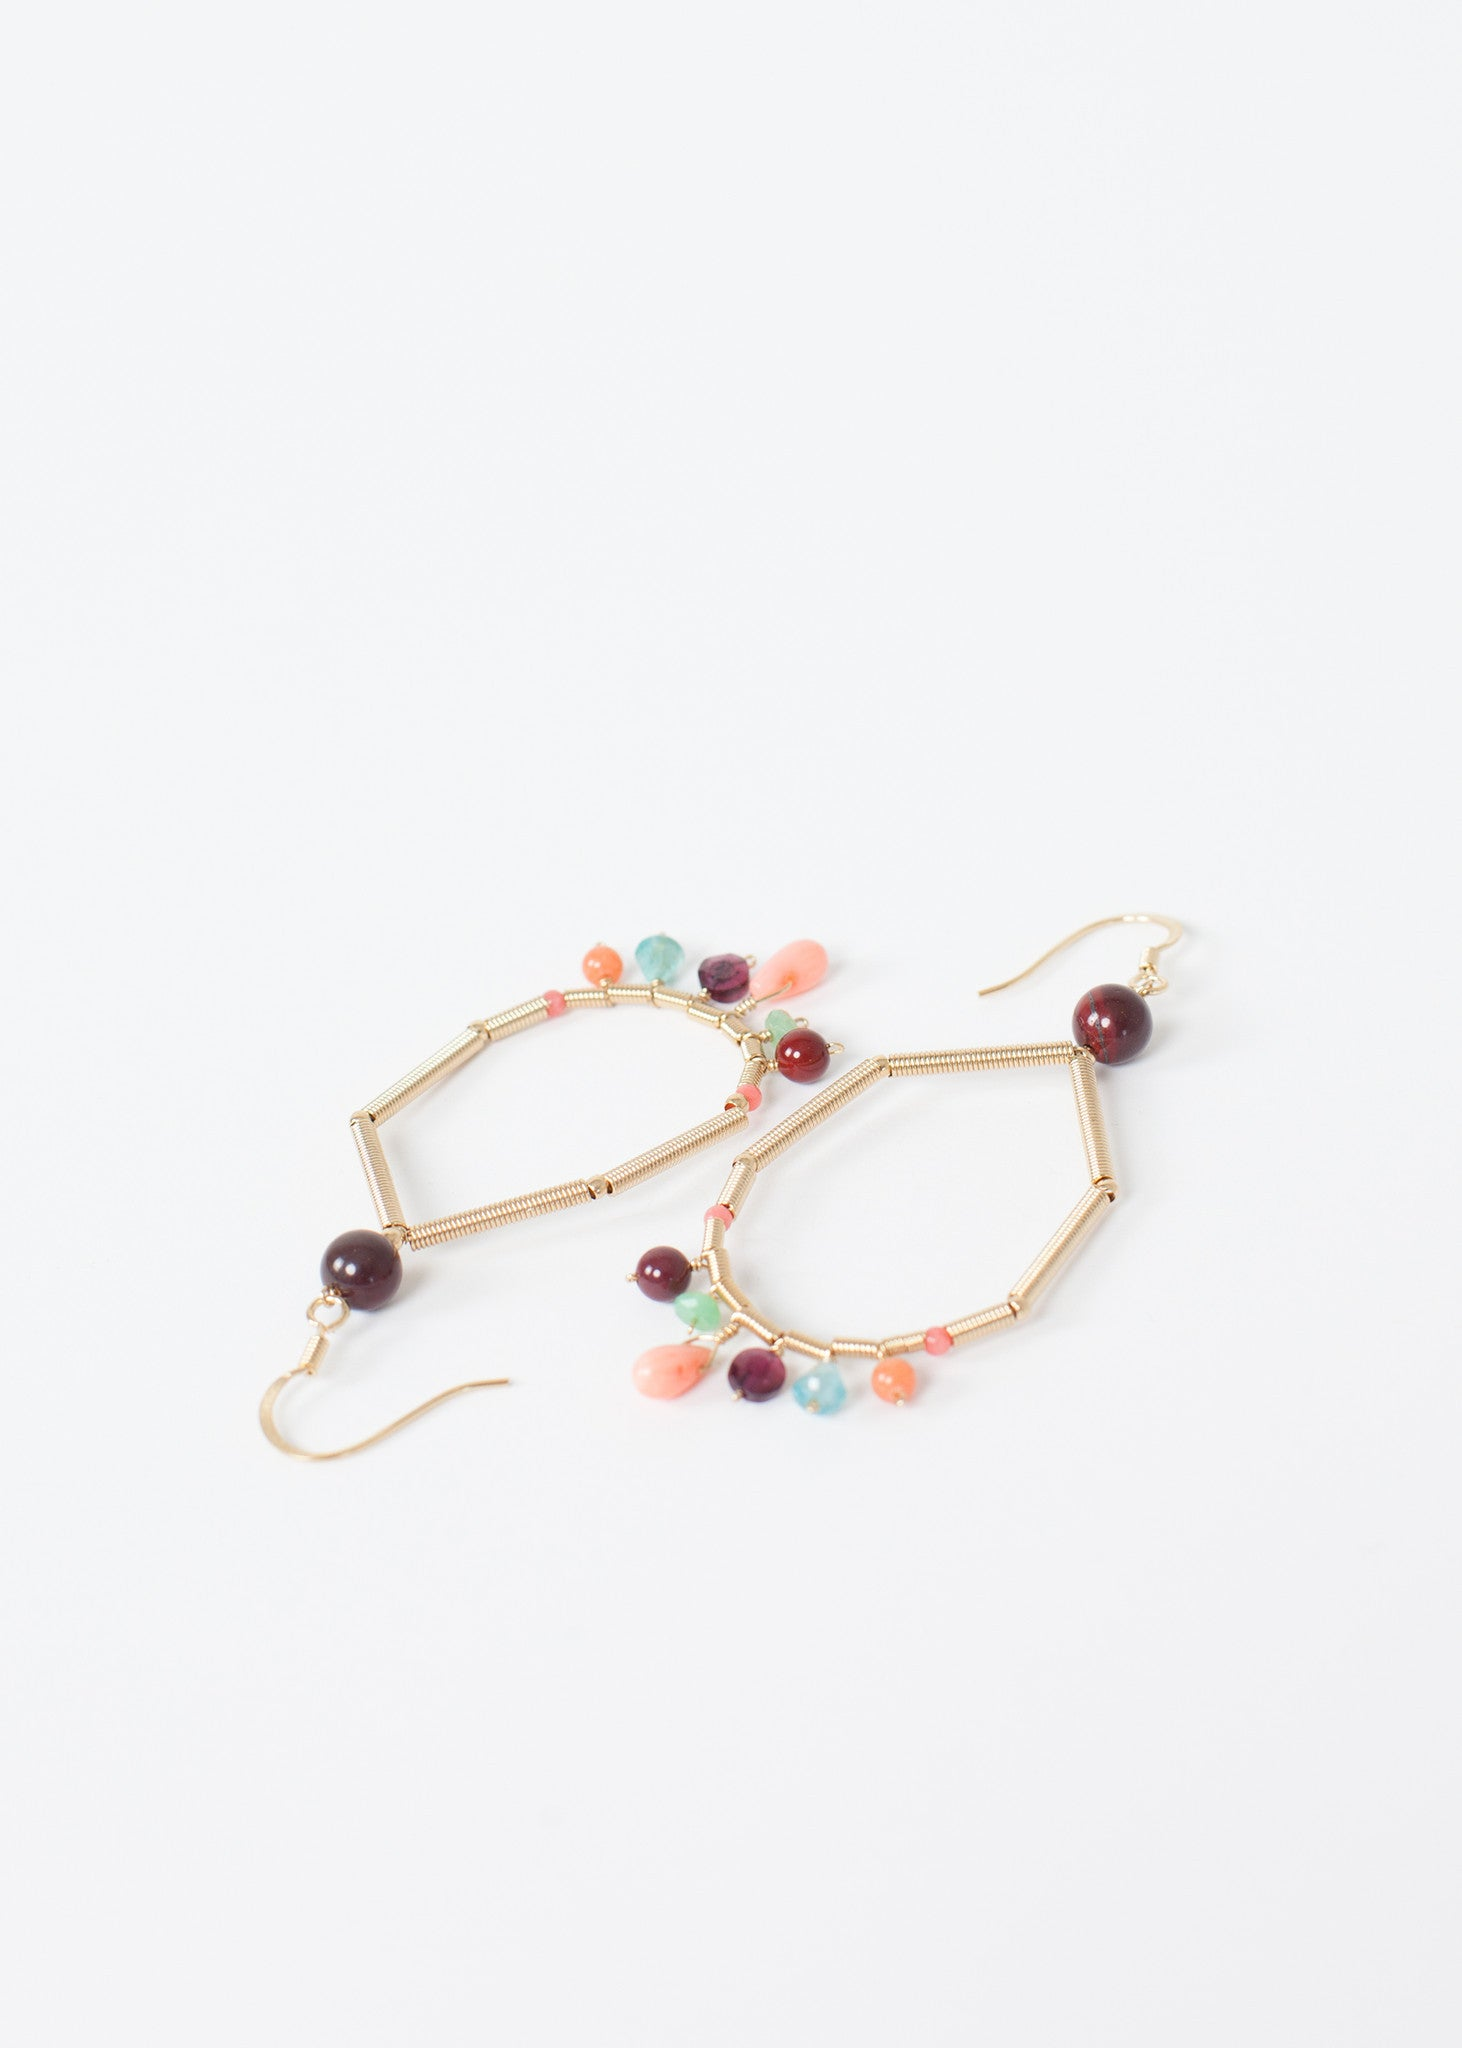 Salda Earrings